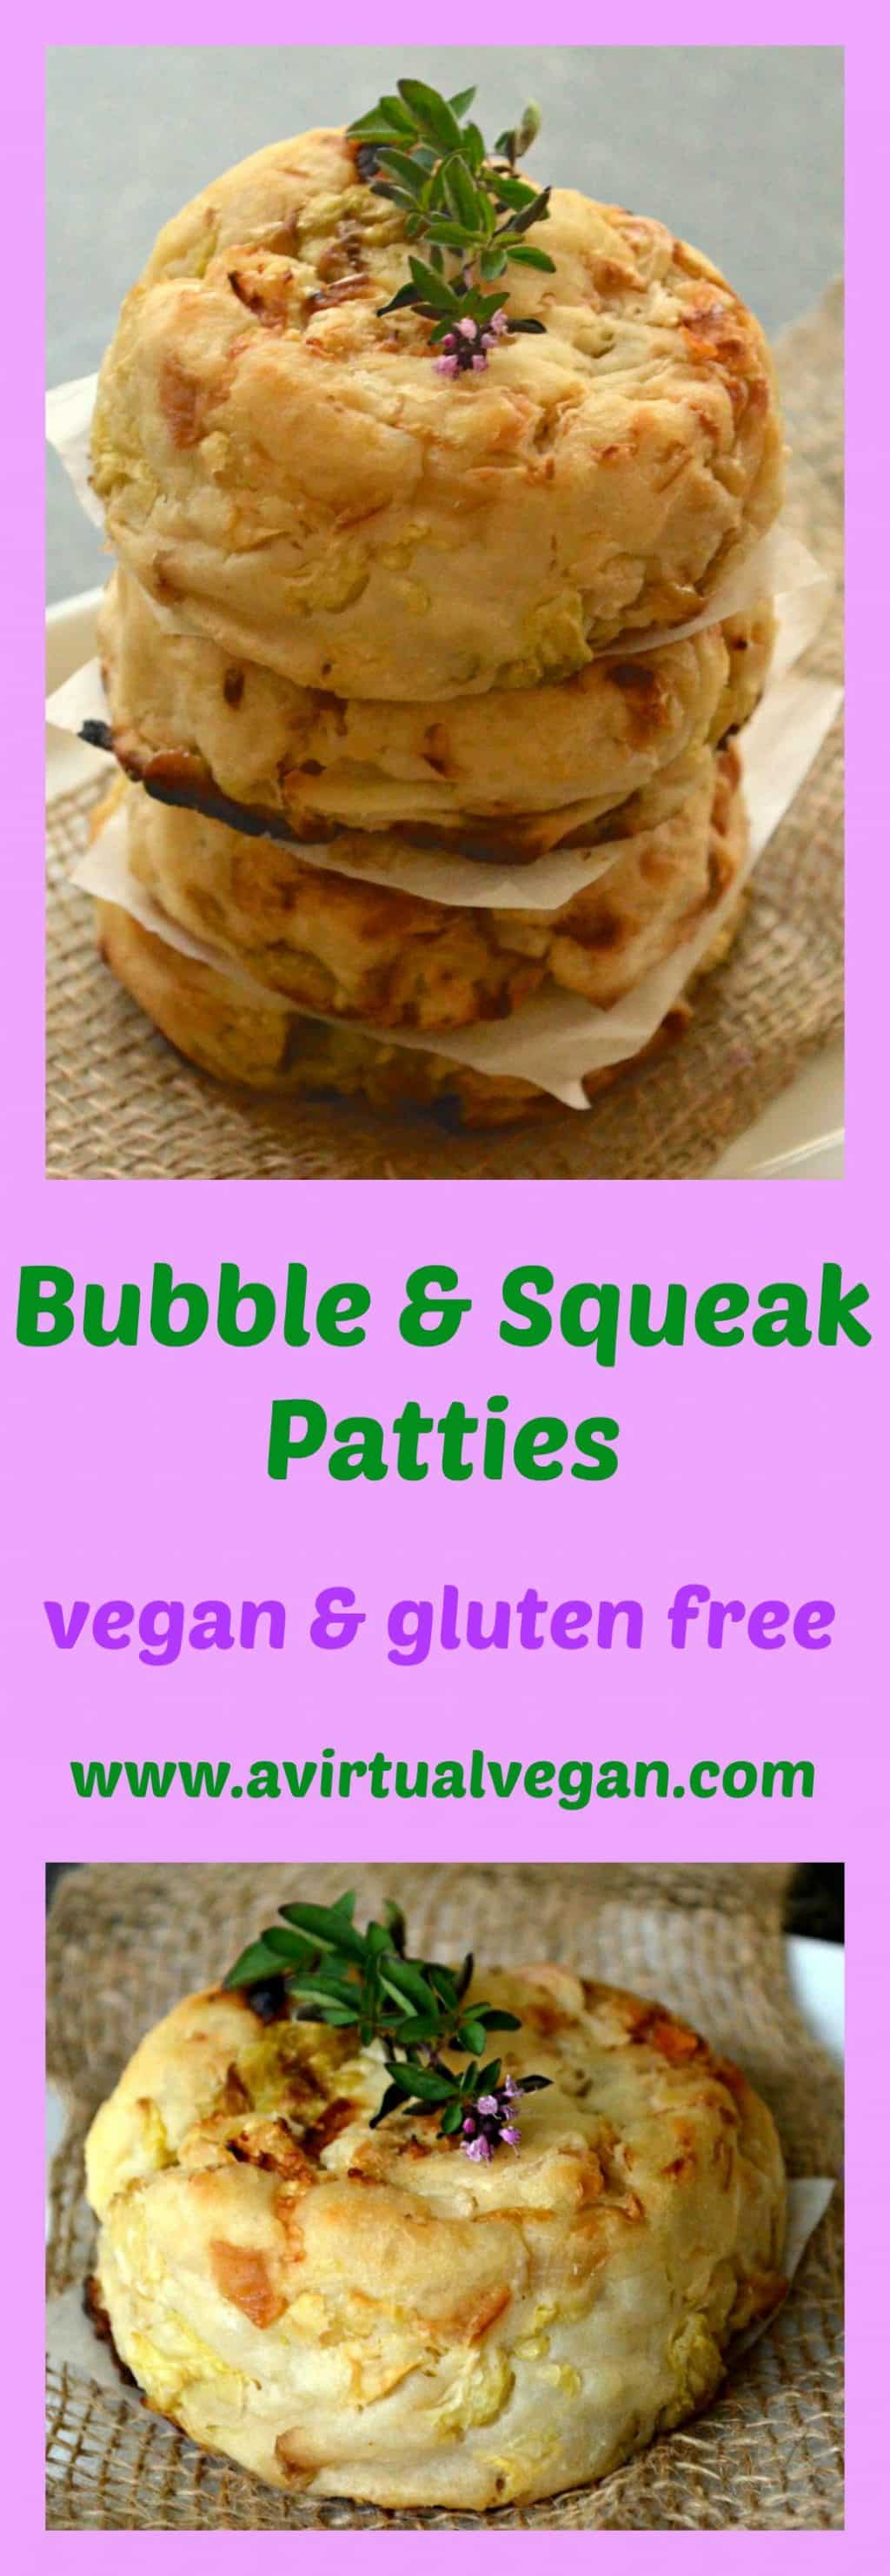 Delicious oven baked Bubble & Squeak Patties. Made with only 4 ingredients and super easy. A great way to get your children to eat their vegetables!